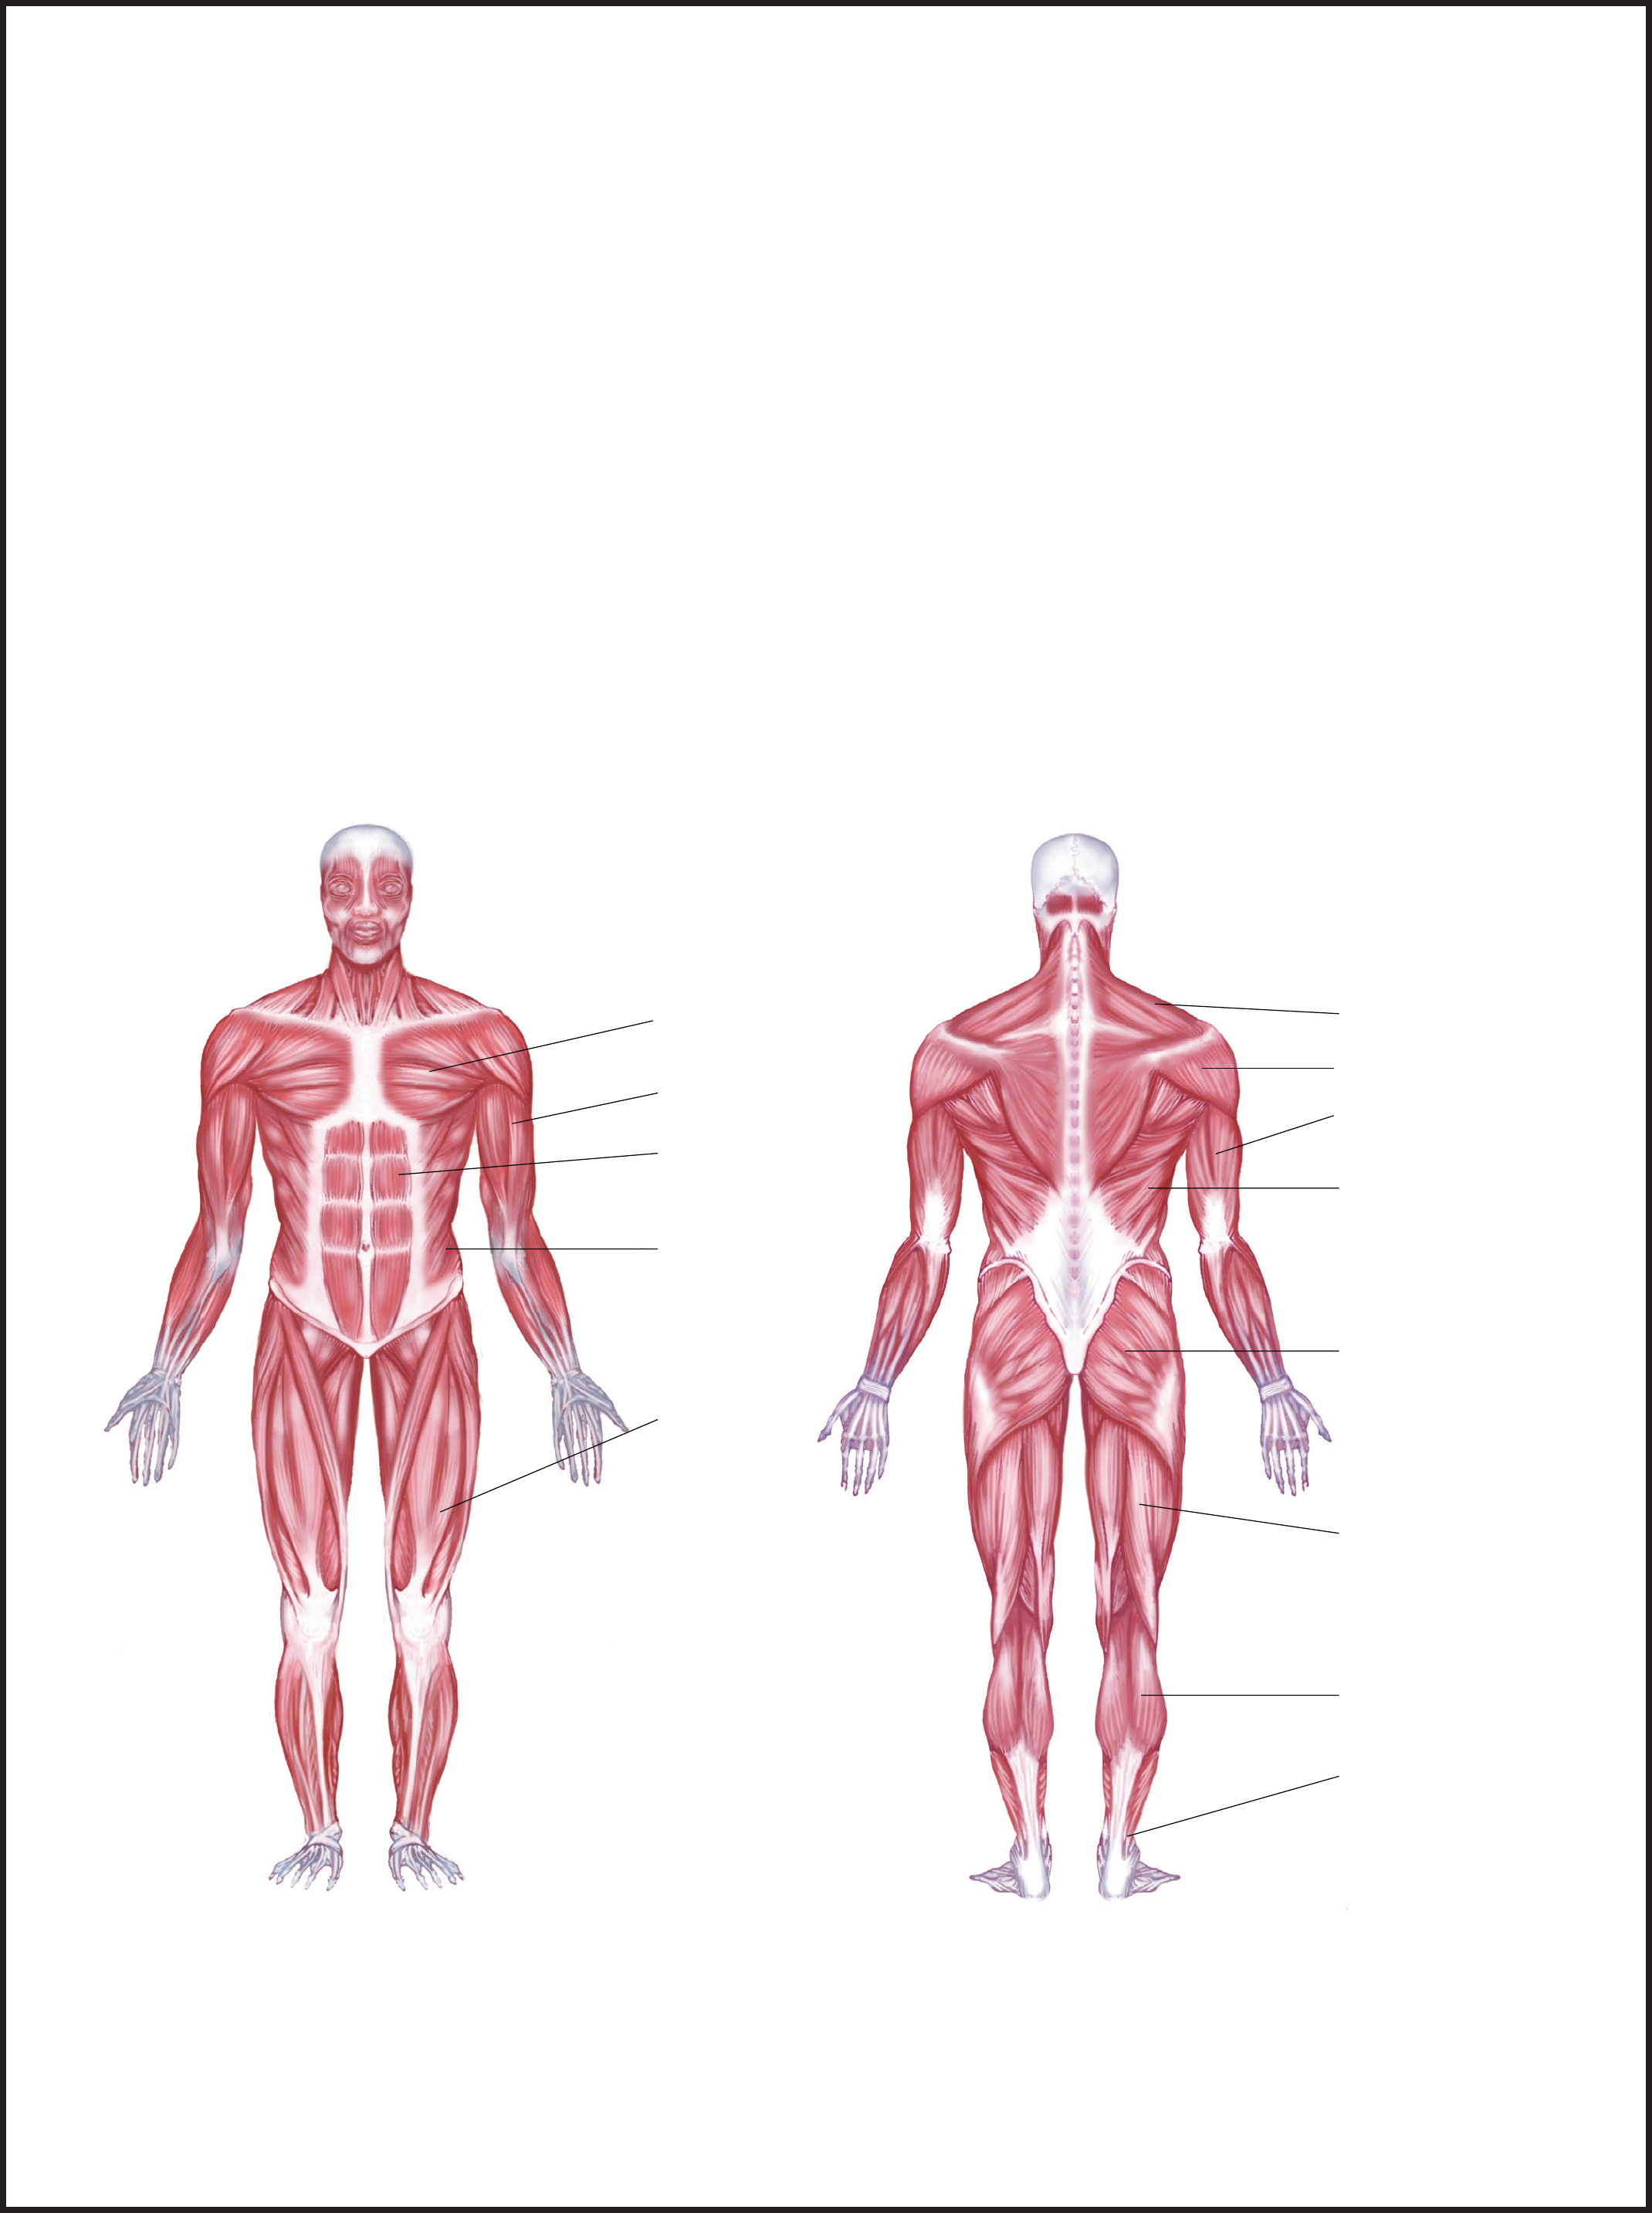 Labeled Muscle Diagram Chart Free Download – Muscle Chart Template